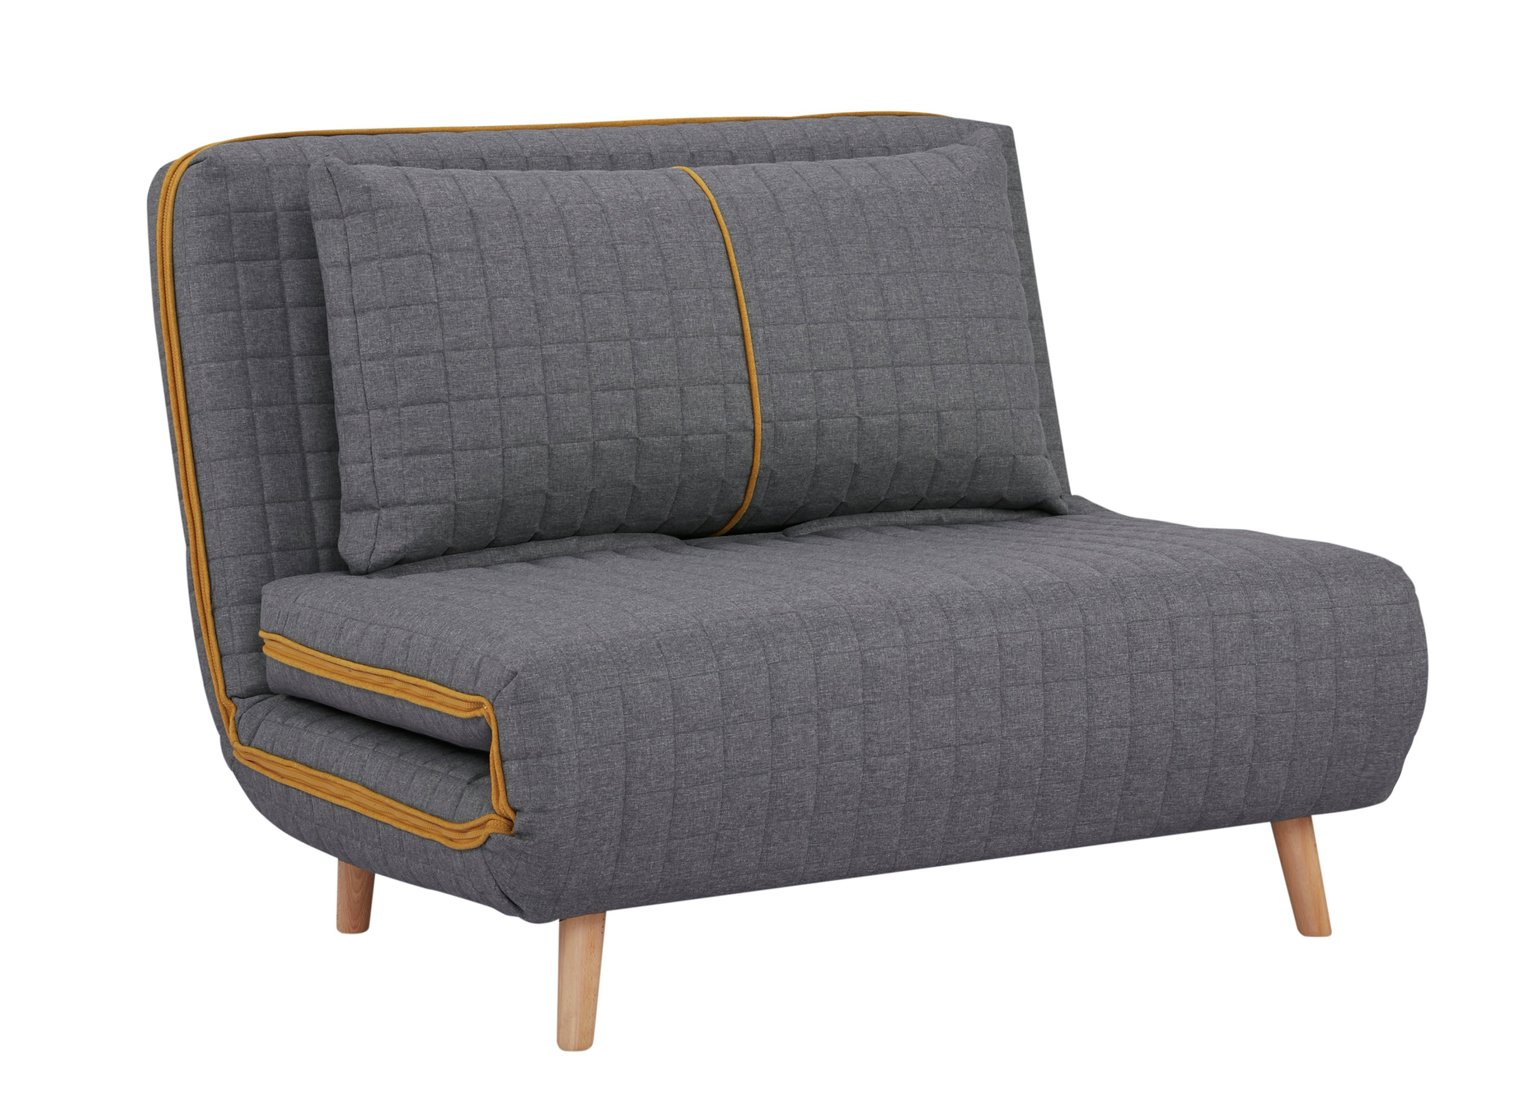 Habitat Roma Small Double Quilted Sofa Bed - Charcoal